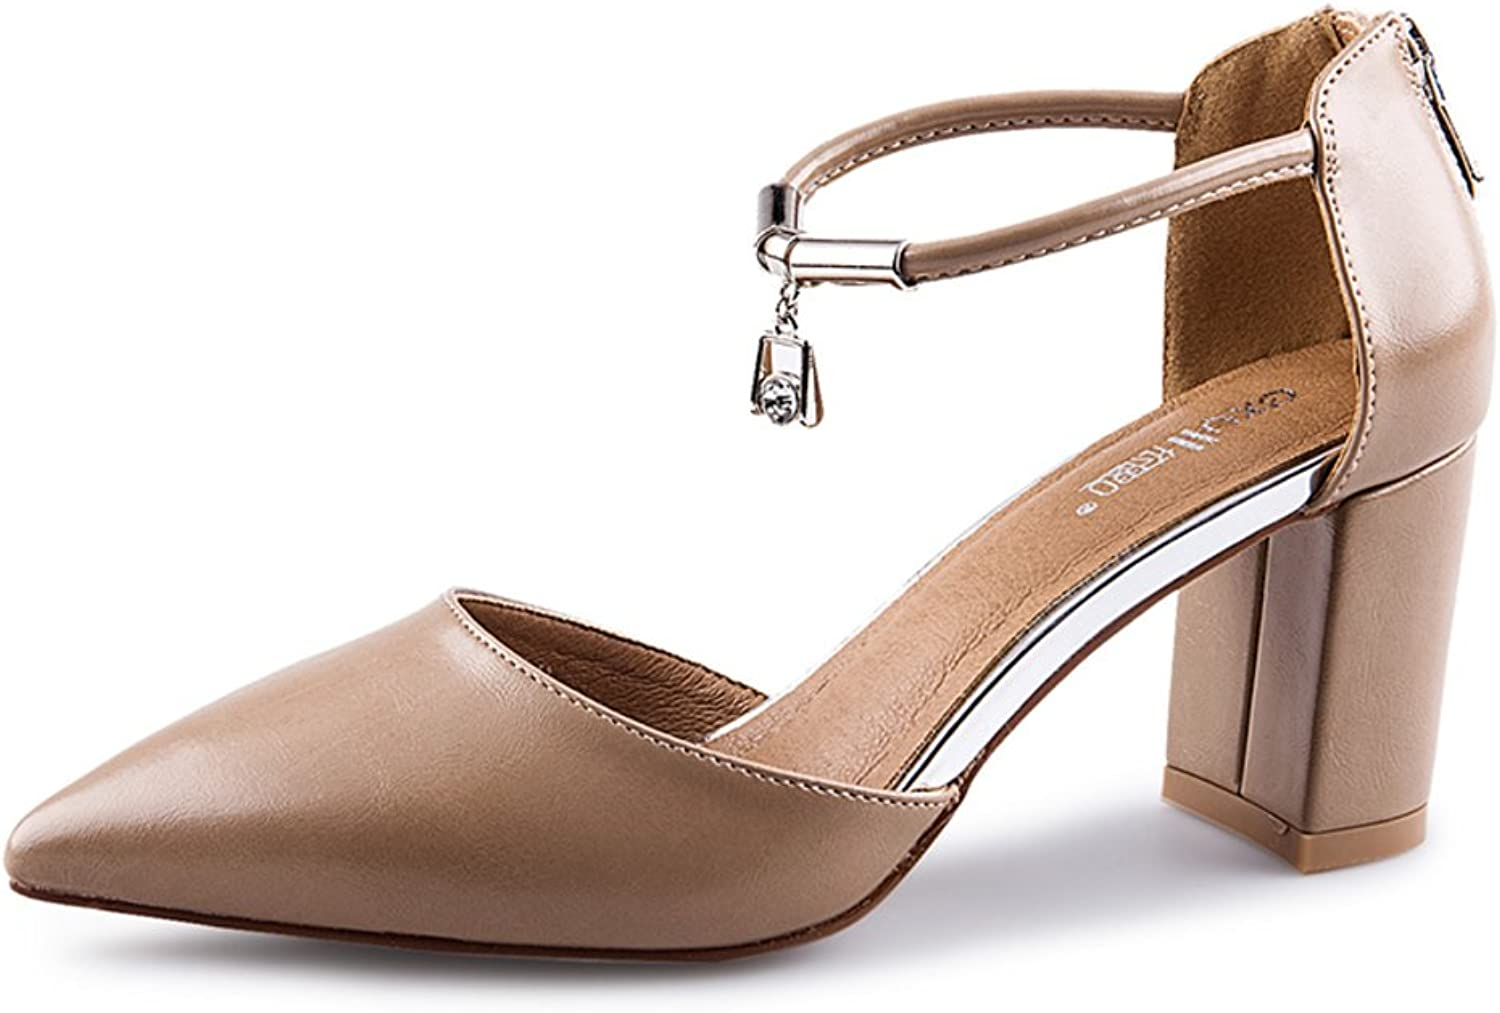 MET RXL Summer,Pointy shoes Lady,Low-Cut shoes A Buckle,Chunky Heel Sandals High Heel shoes